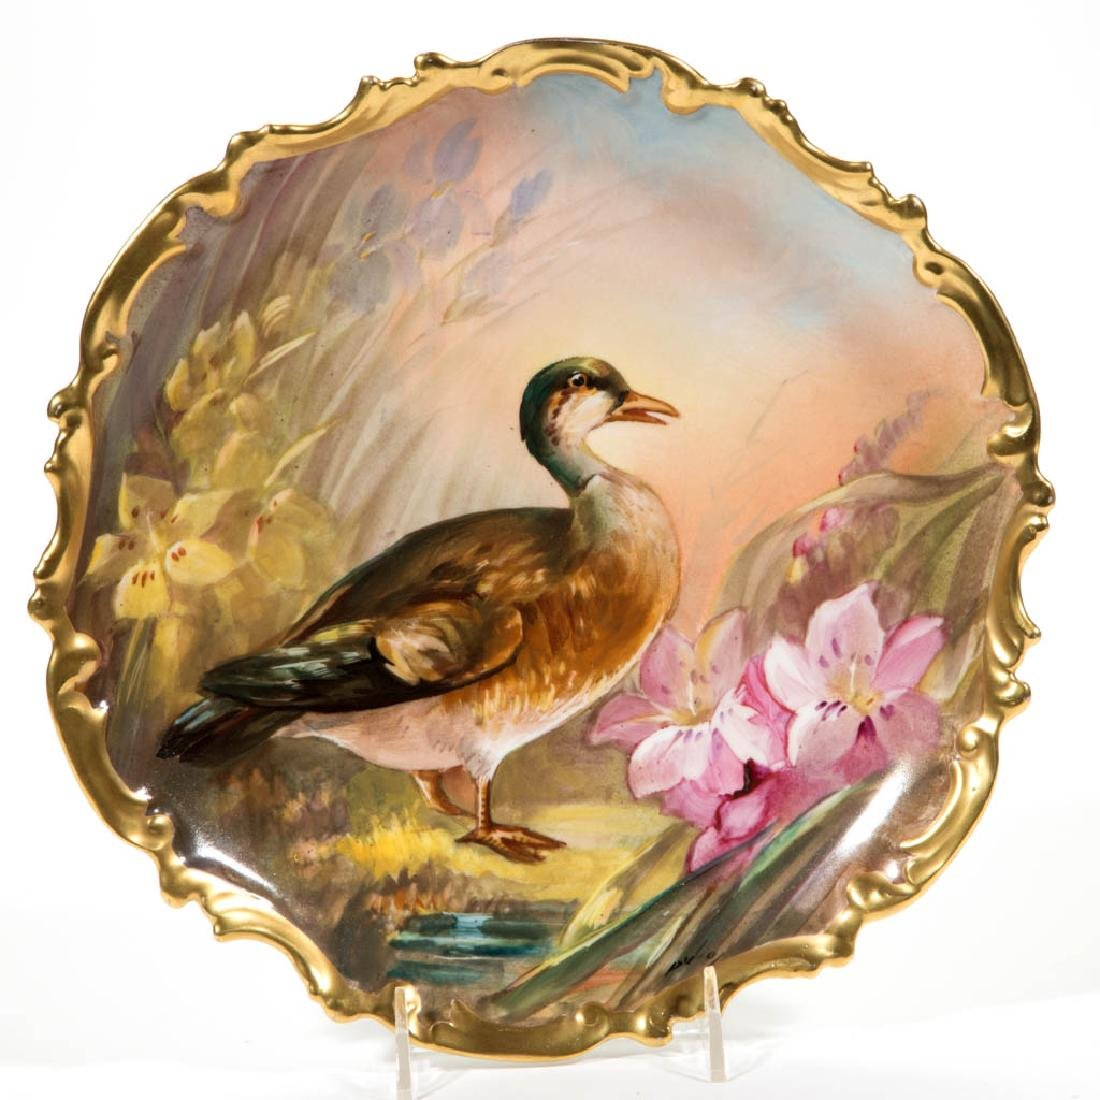 FRENCH LIMOGES PORCELAIN PLAQUE